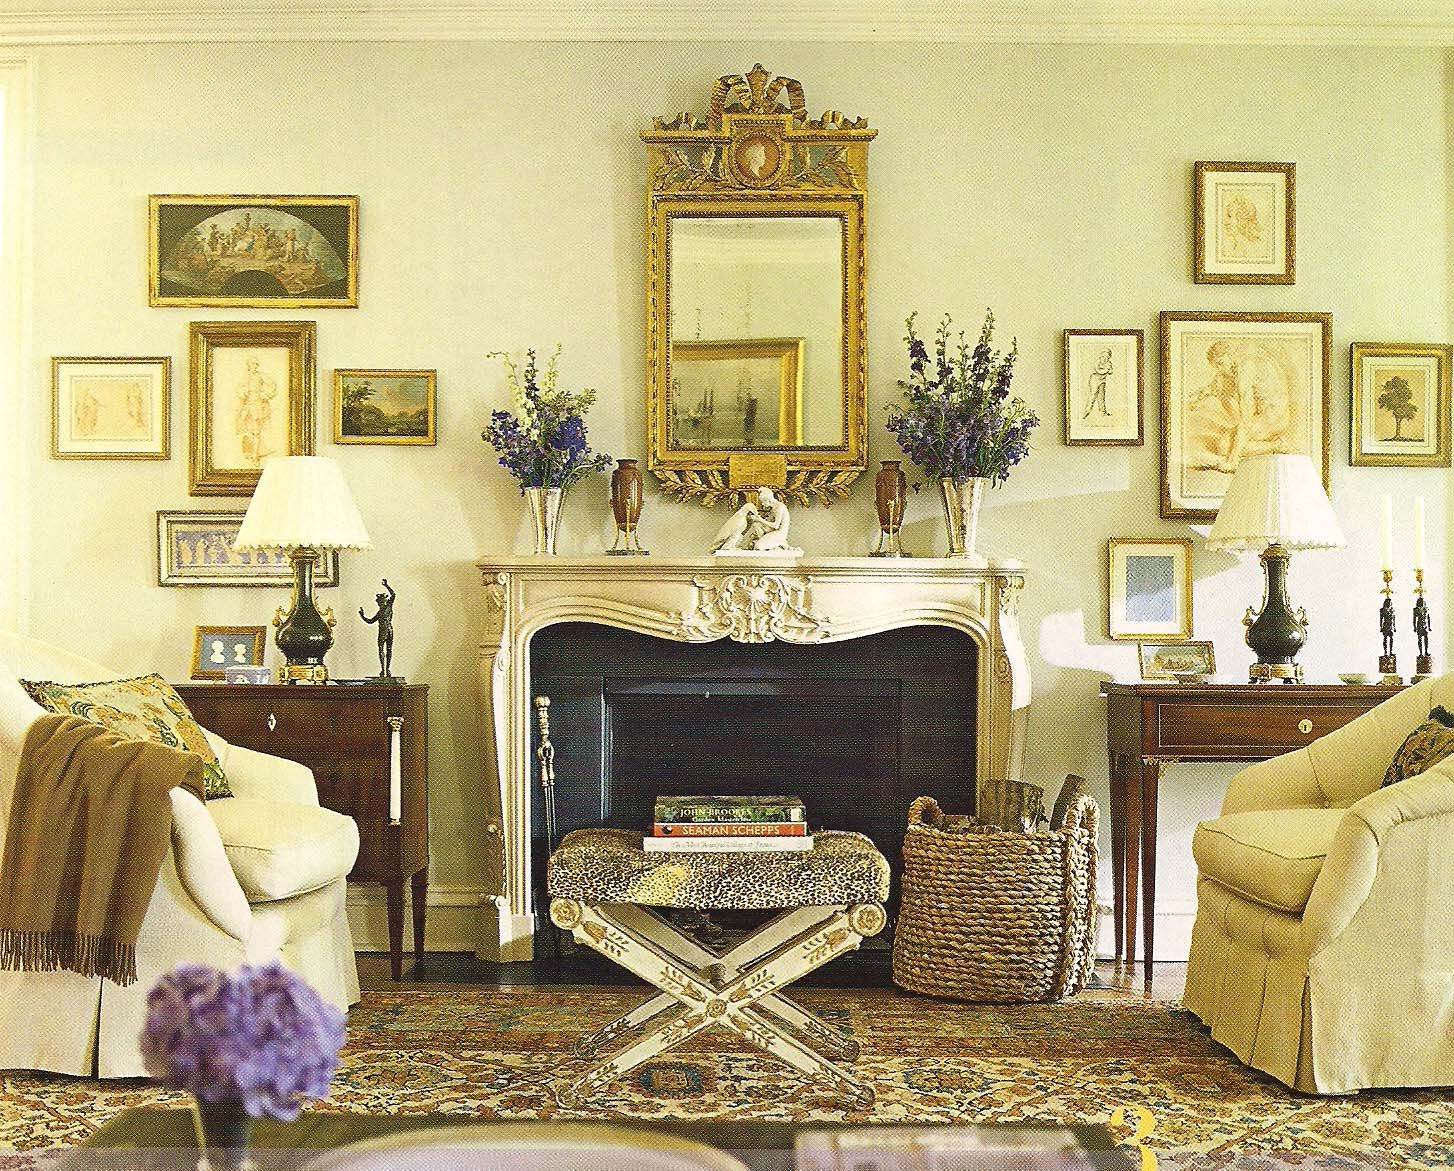 Southern Accents The Best Southern Rooms | Home Style | Pinterest ...